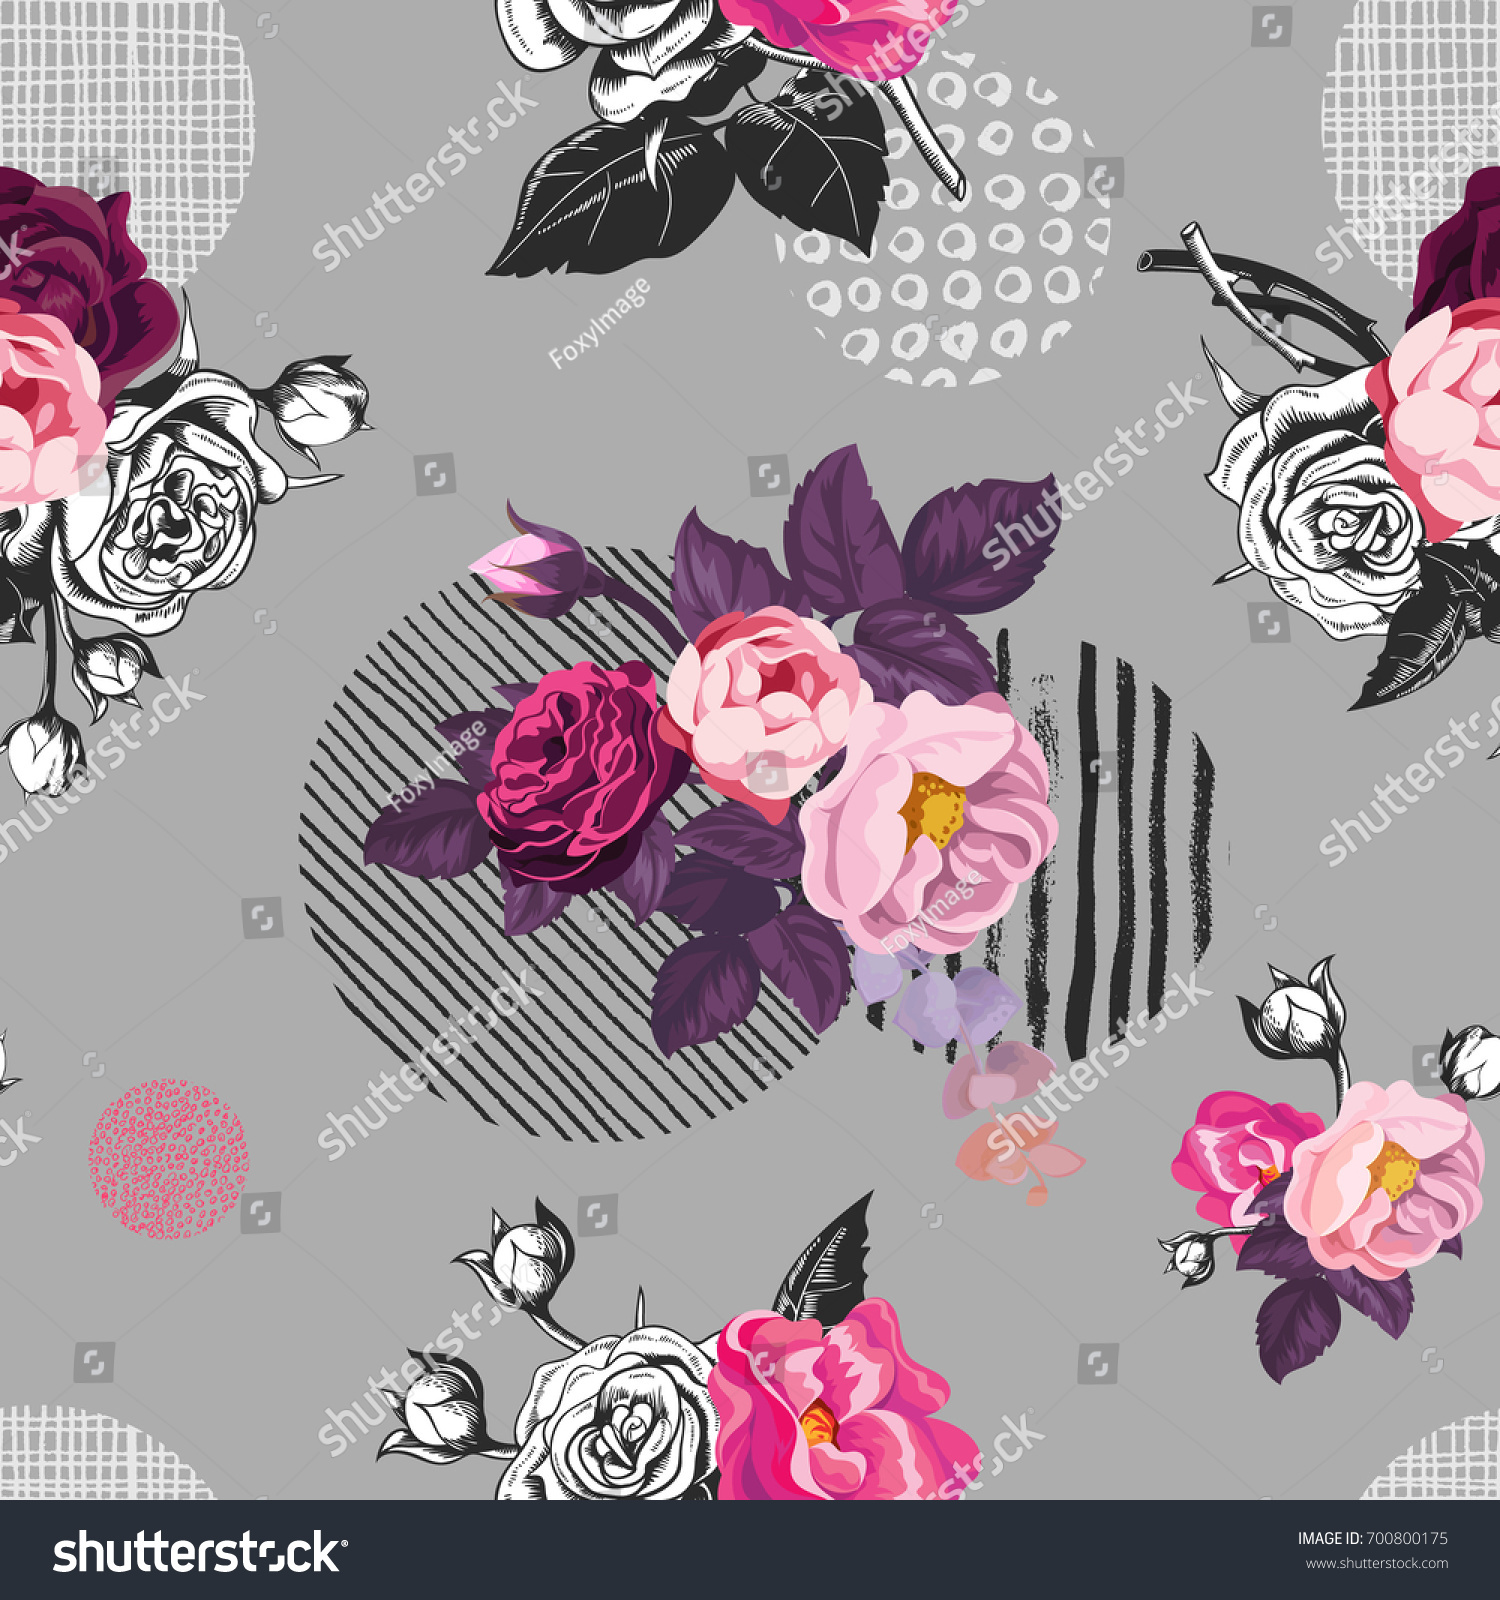 Elegant seamless pattern with semi-colored wild rose flowers against gray  background with hand painted